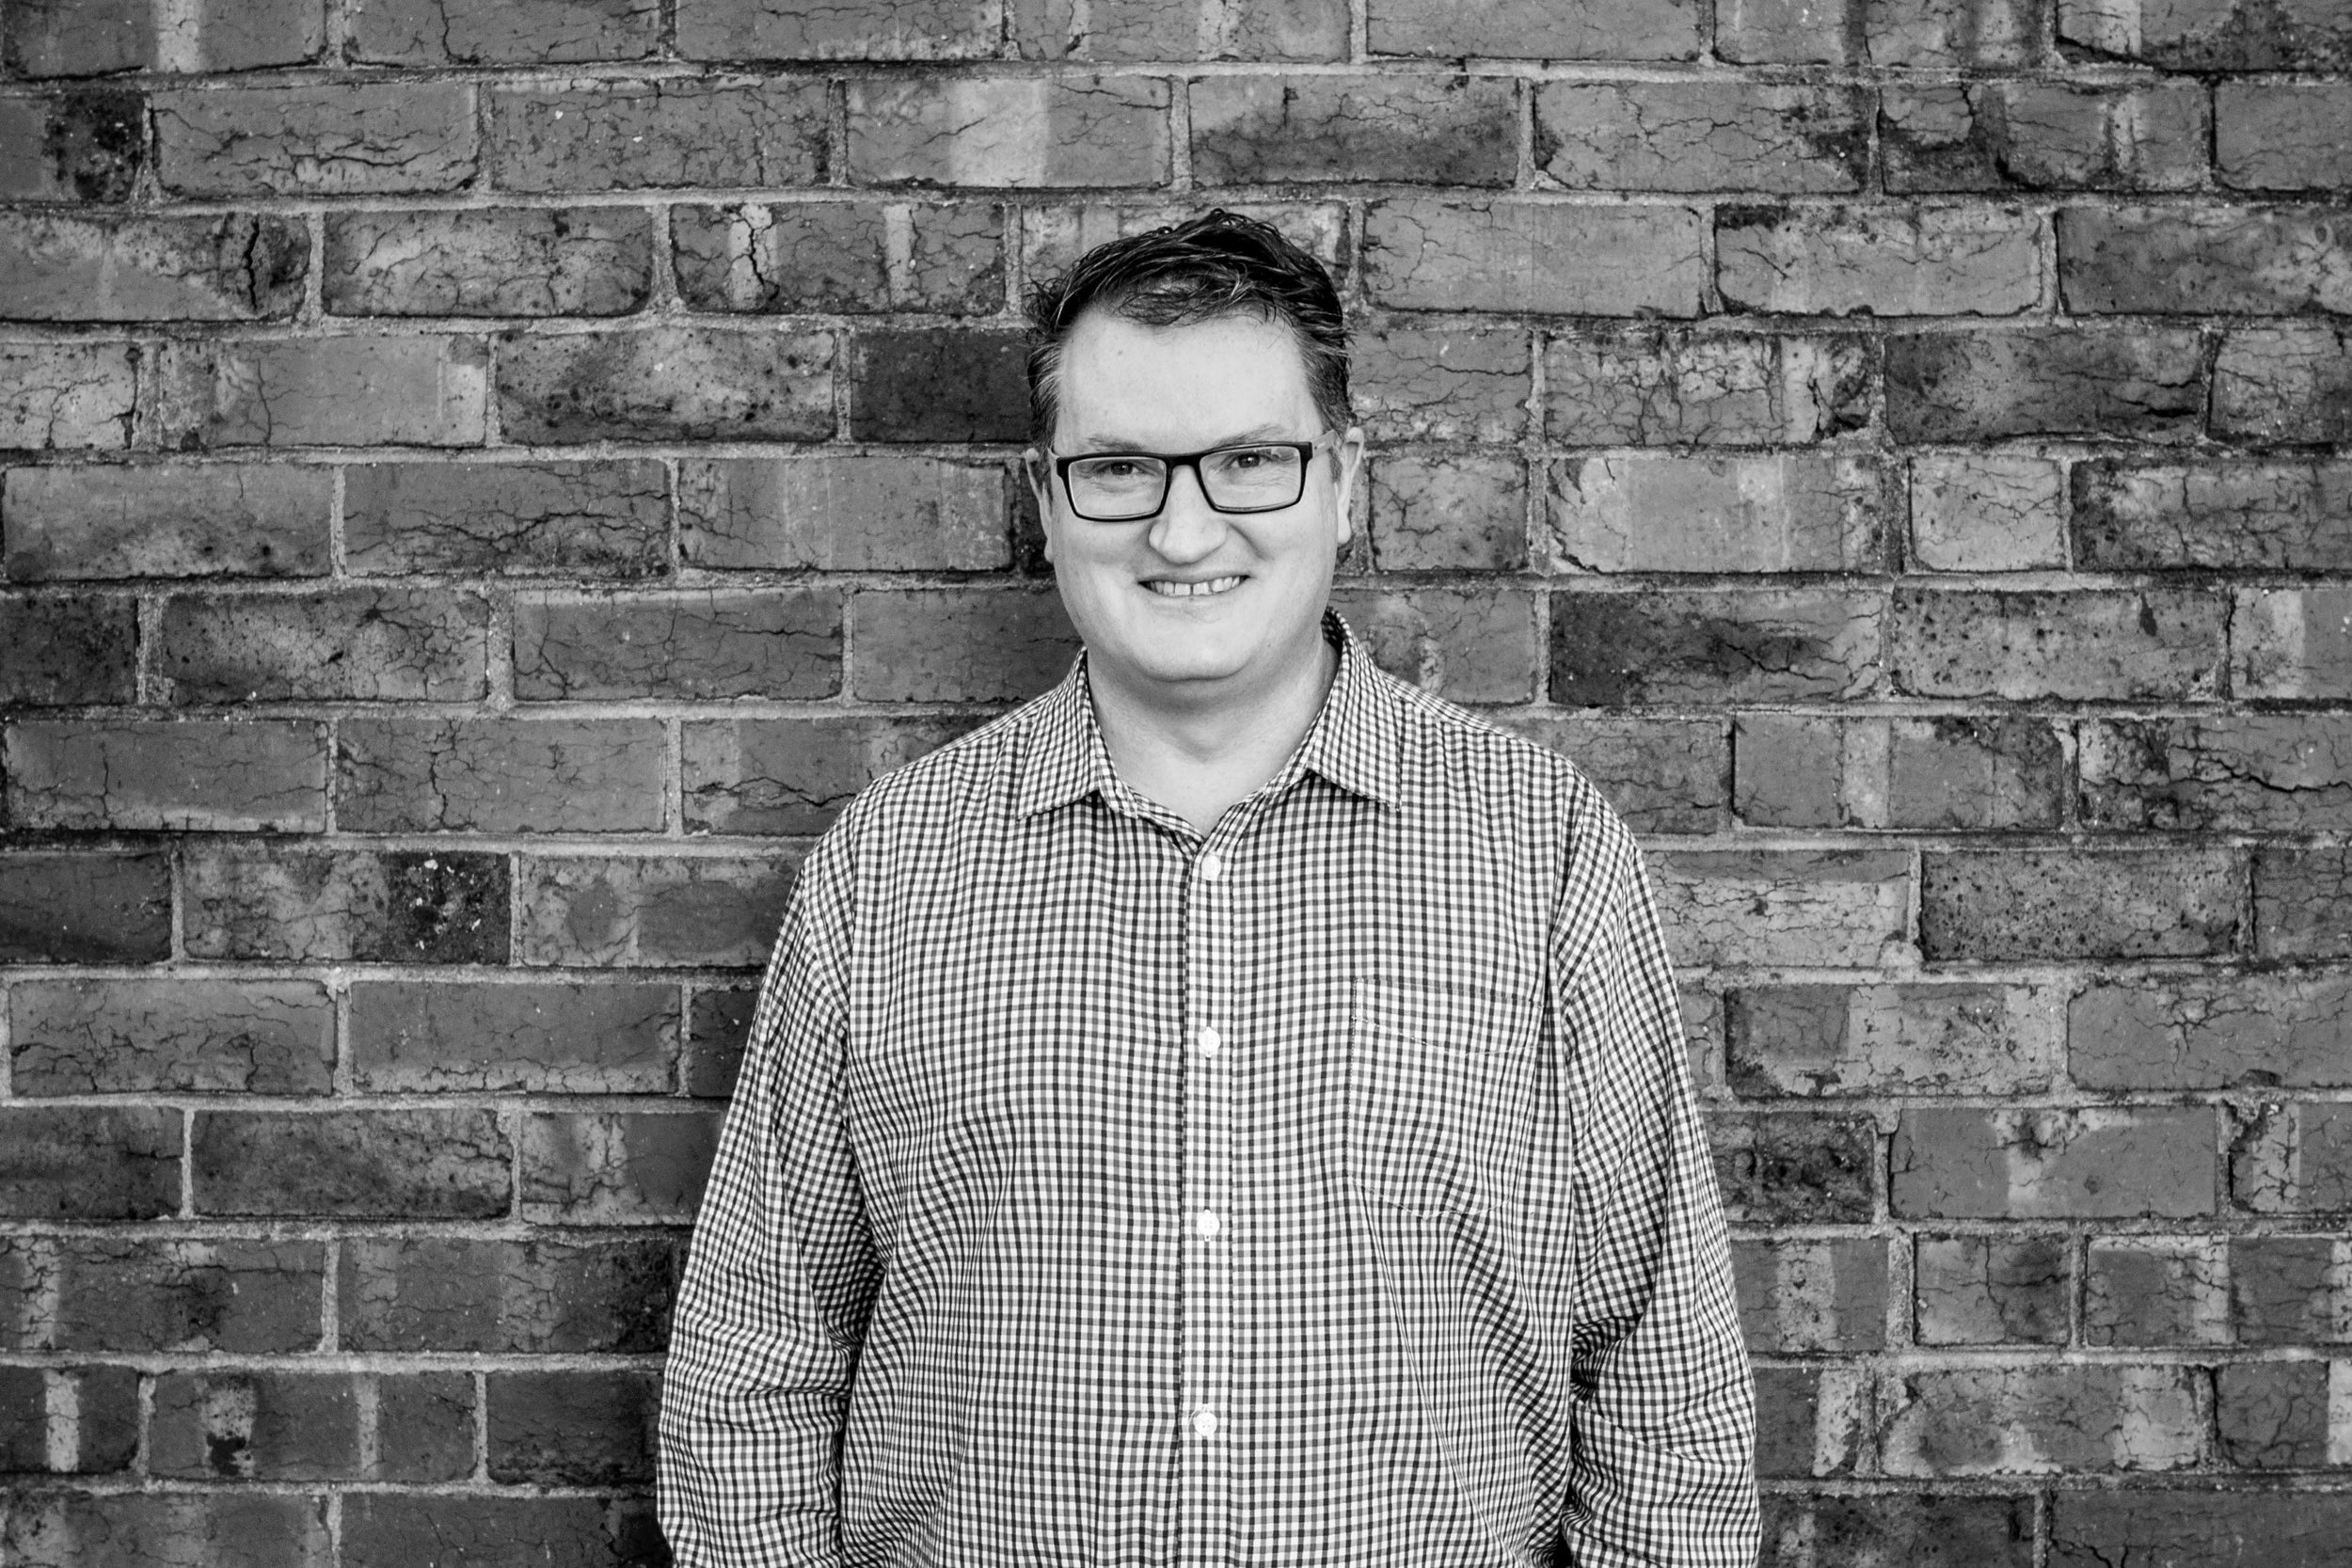 GREGORY WATT | ARCHITECTURAL TECHNICIAN